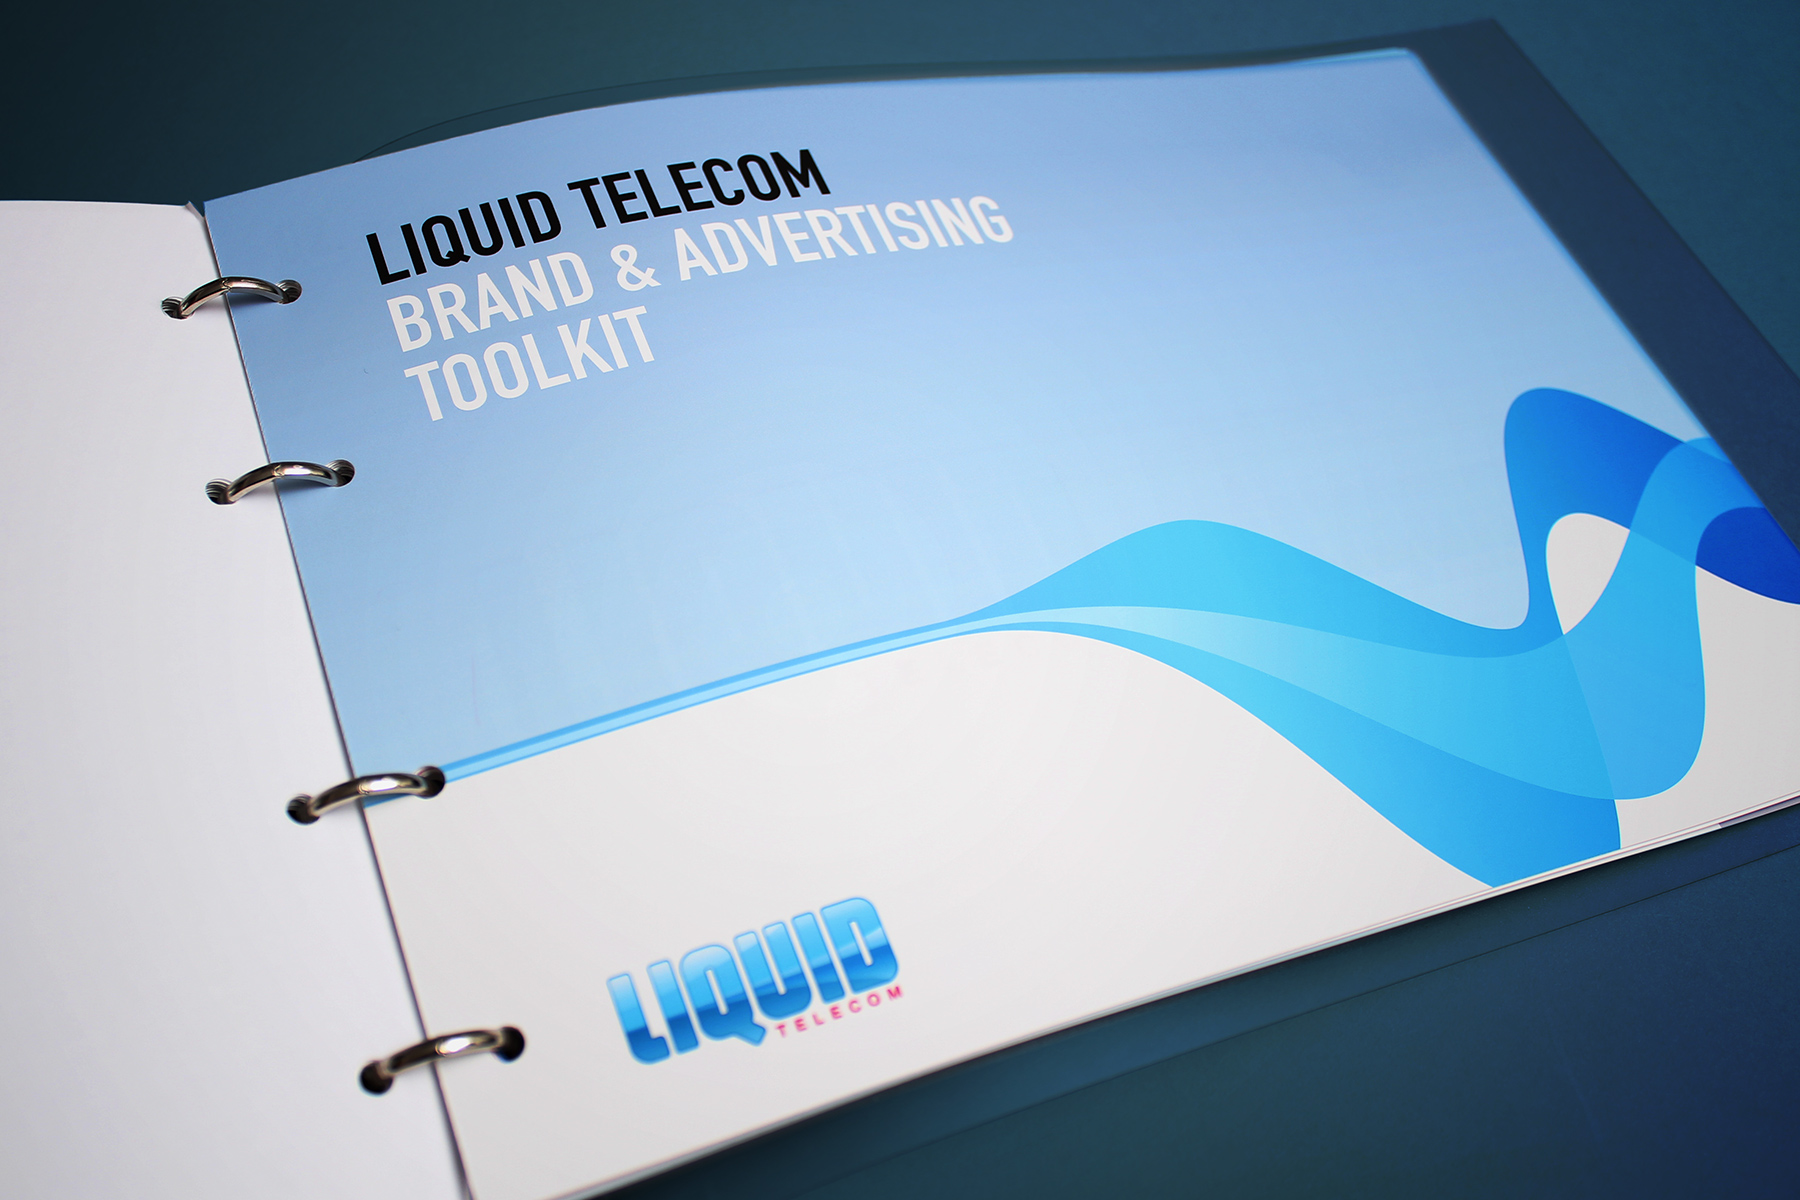 We delivered a full set of tone, spirit and brand guidelines covering the entire remit of the brand.